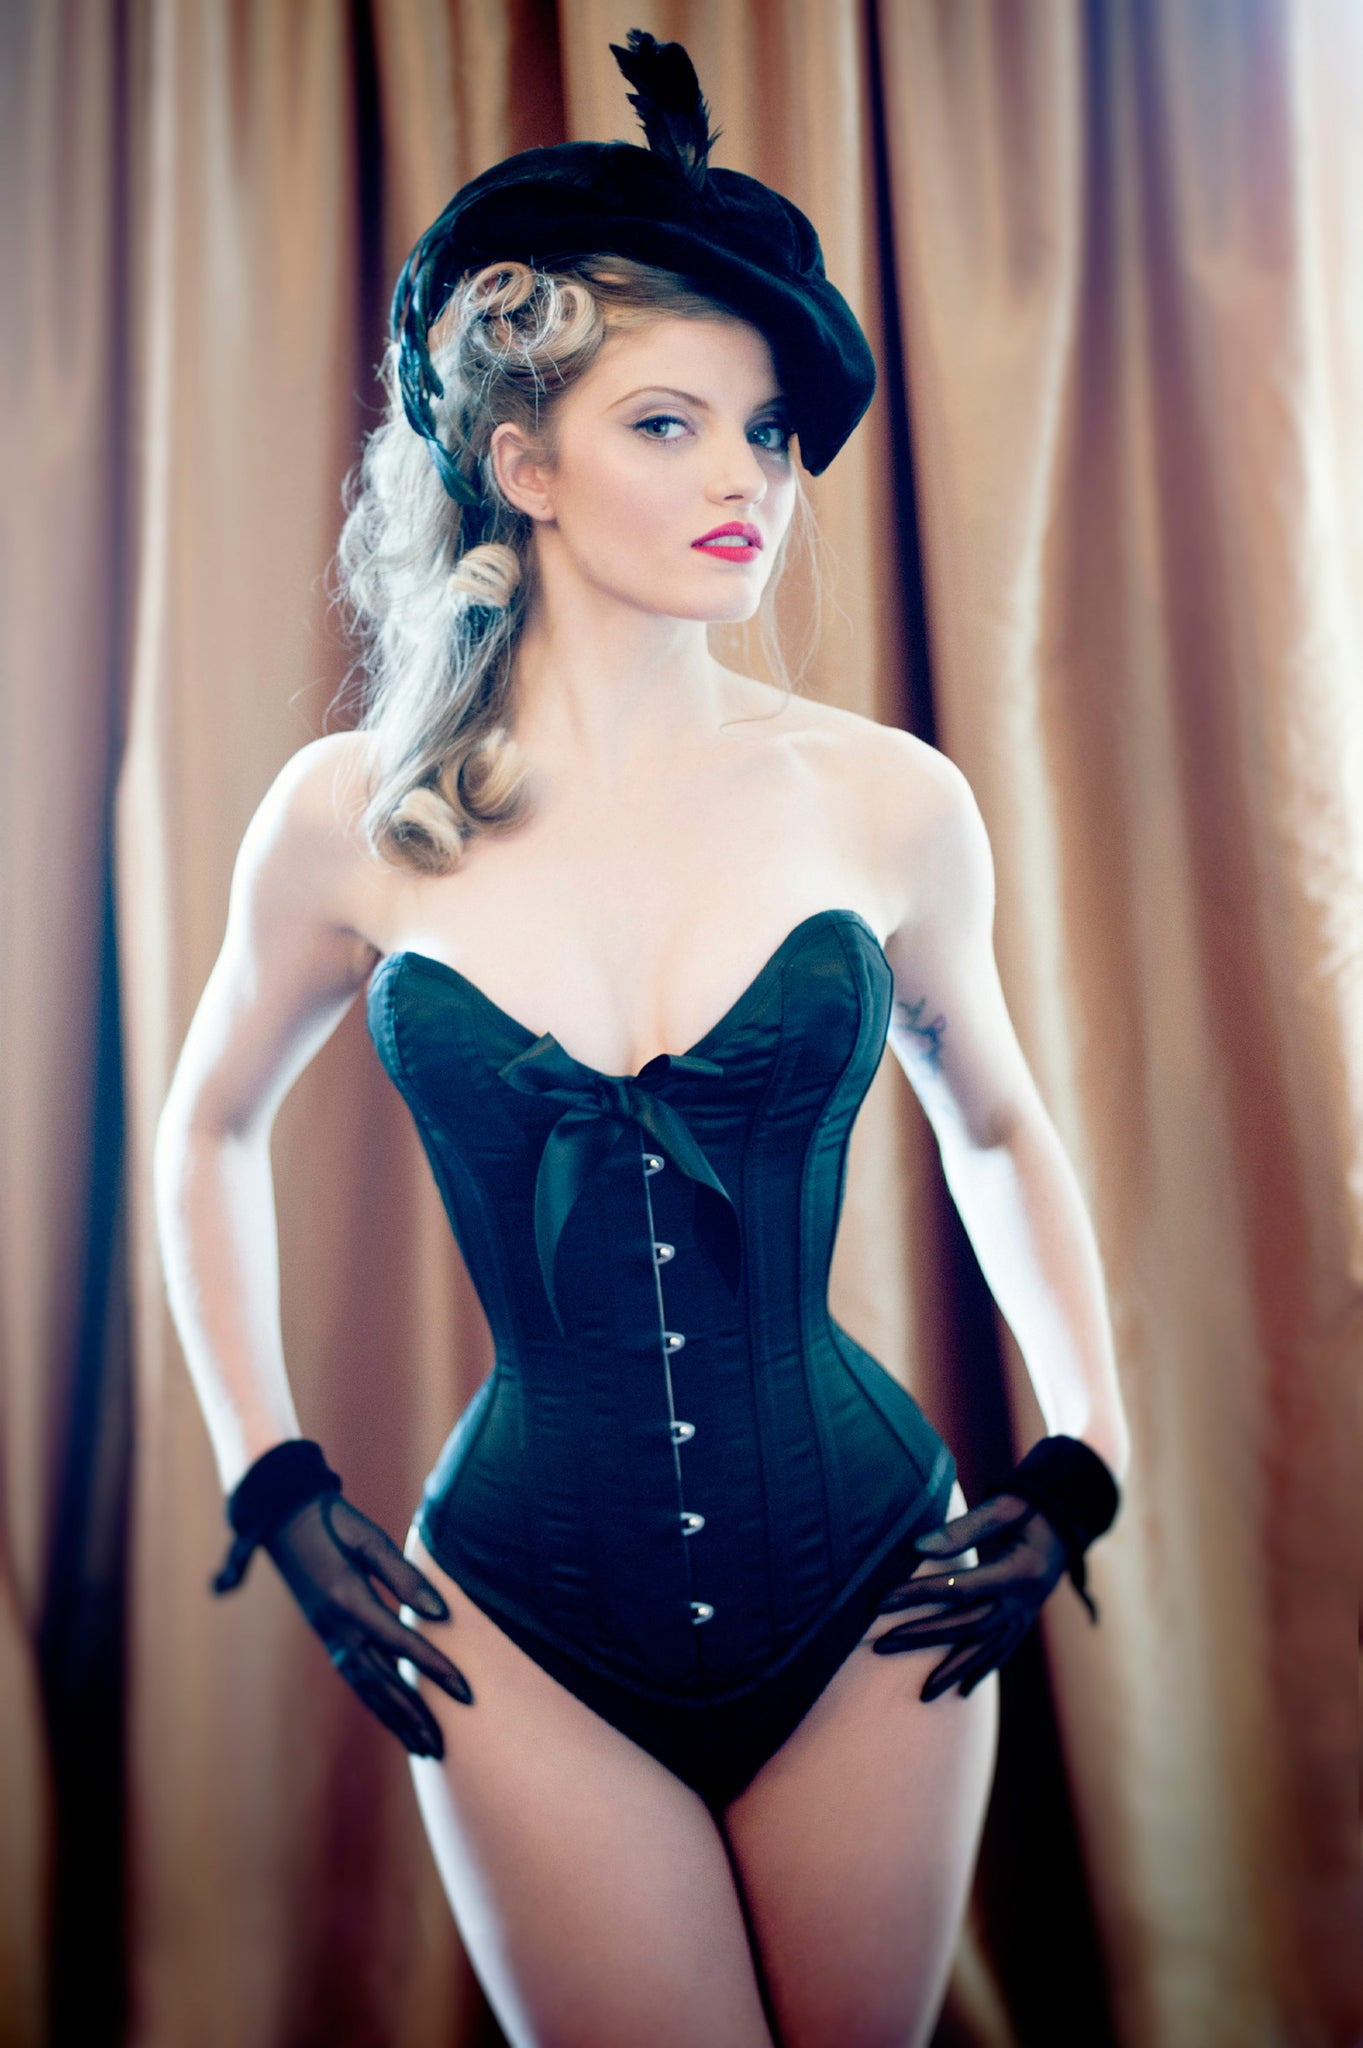 classic black overbust corset with bow